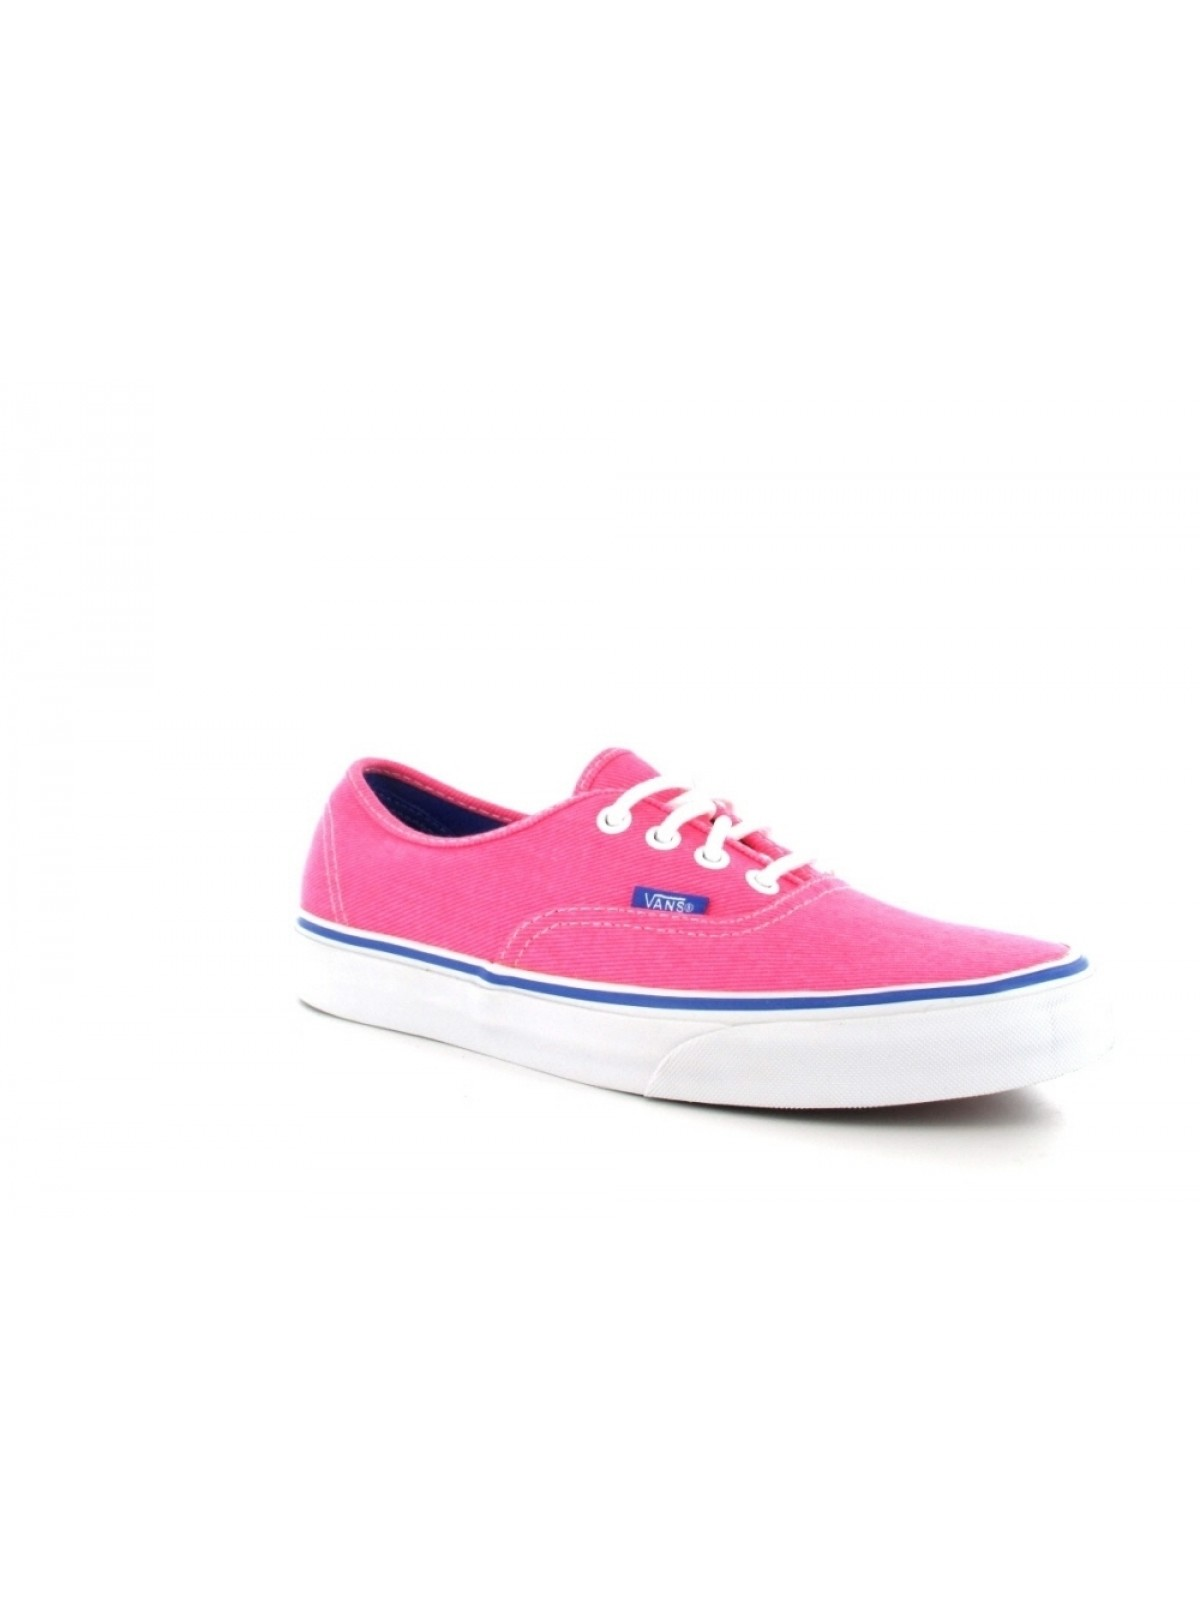 Vans Authentic toile pink palace